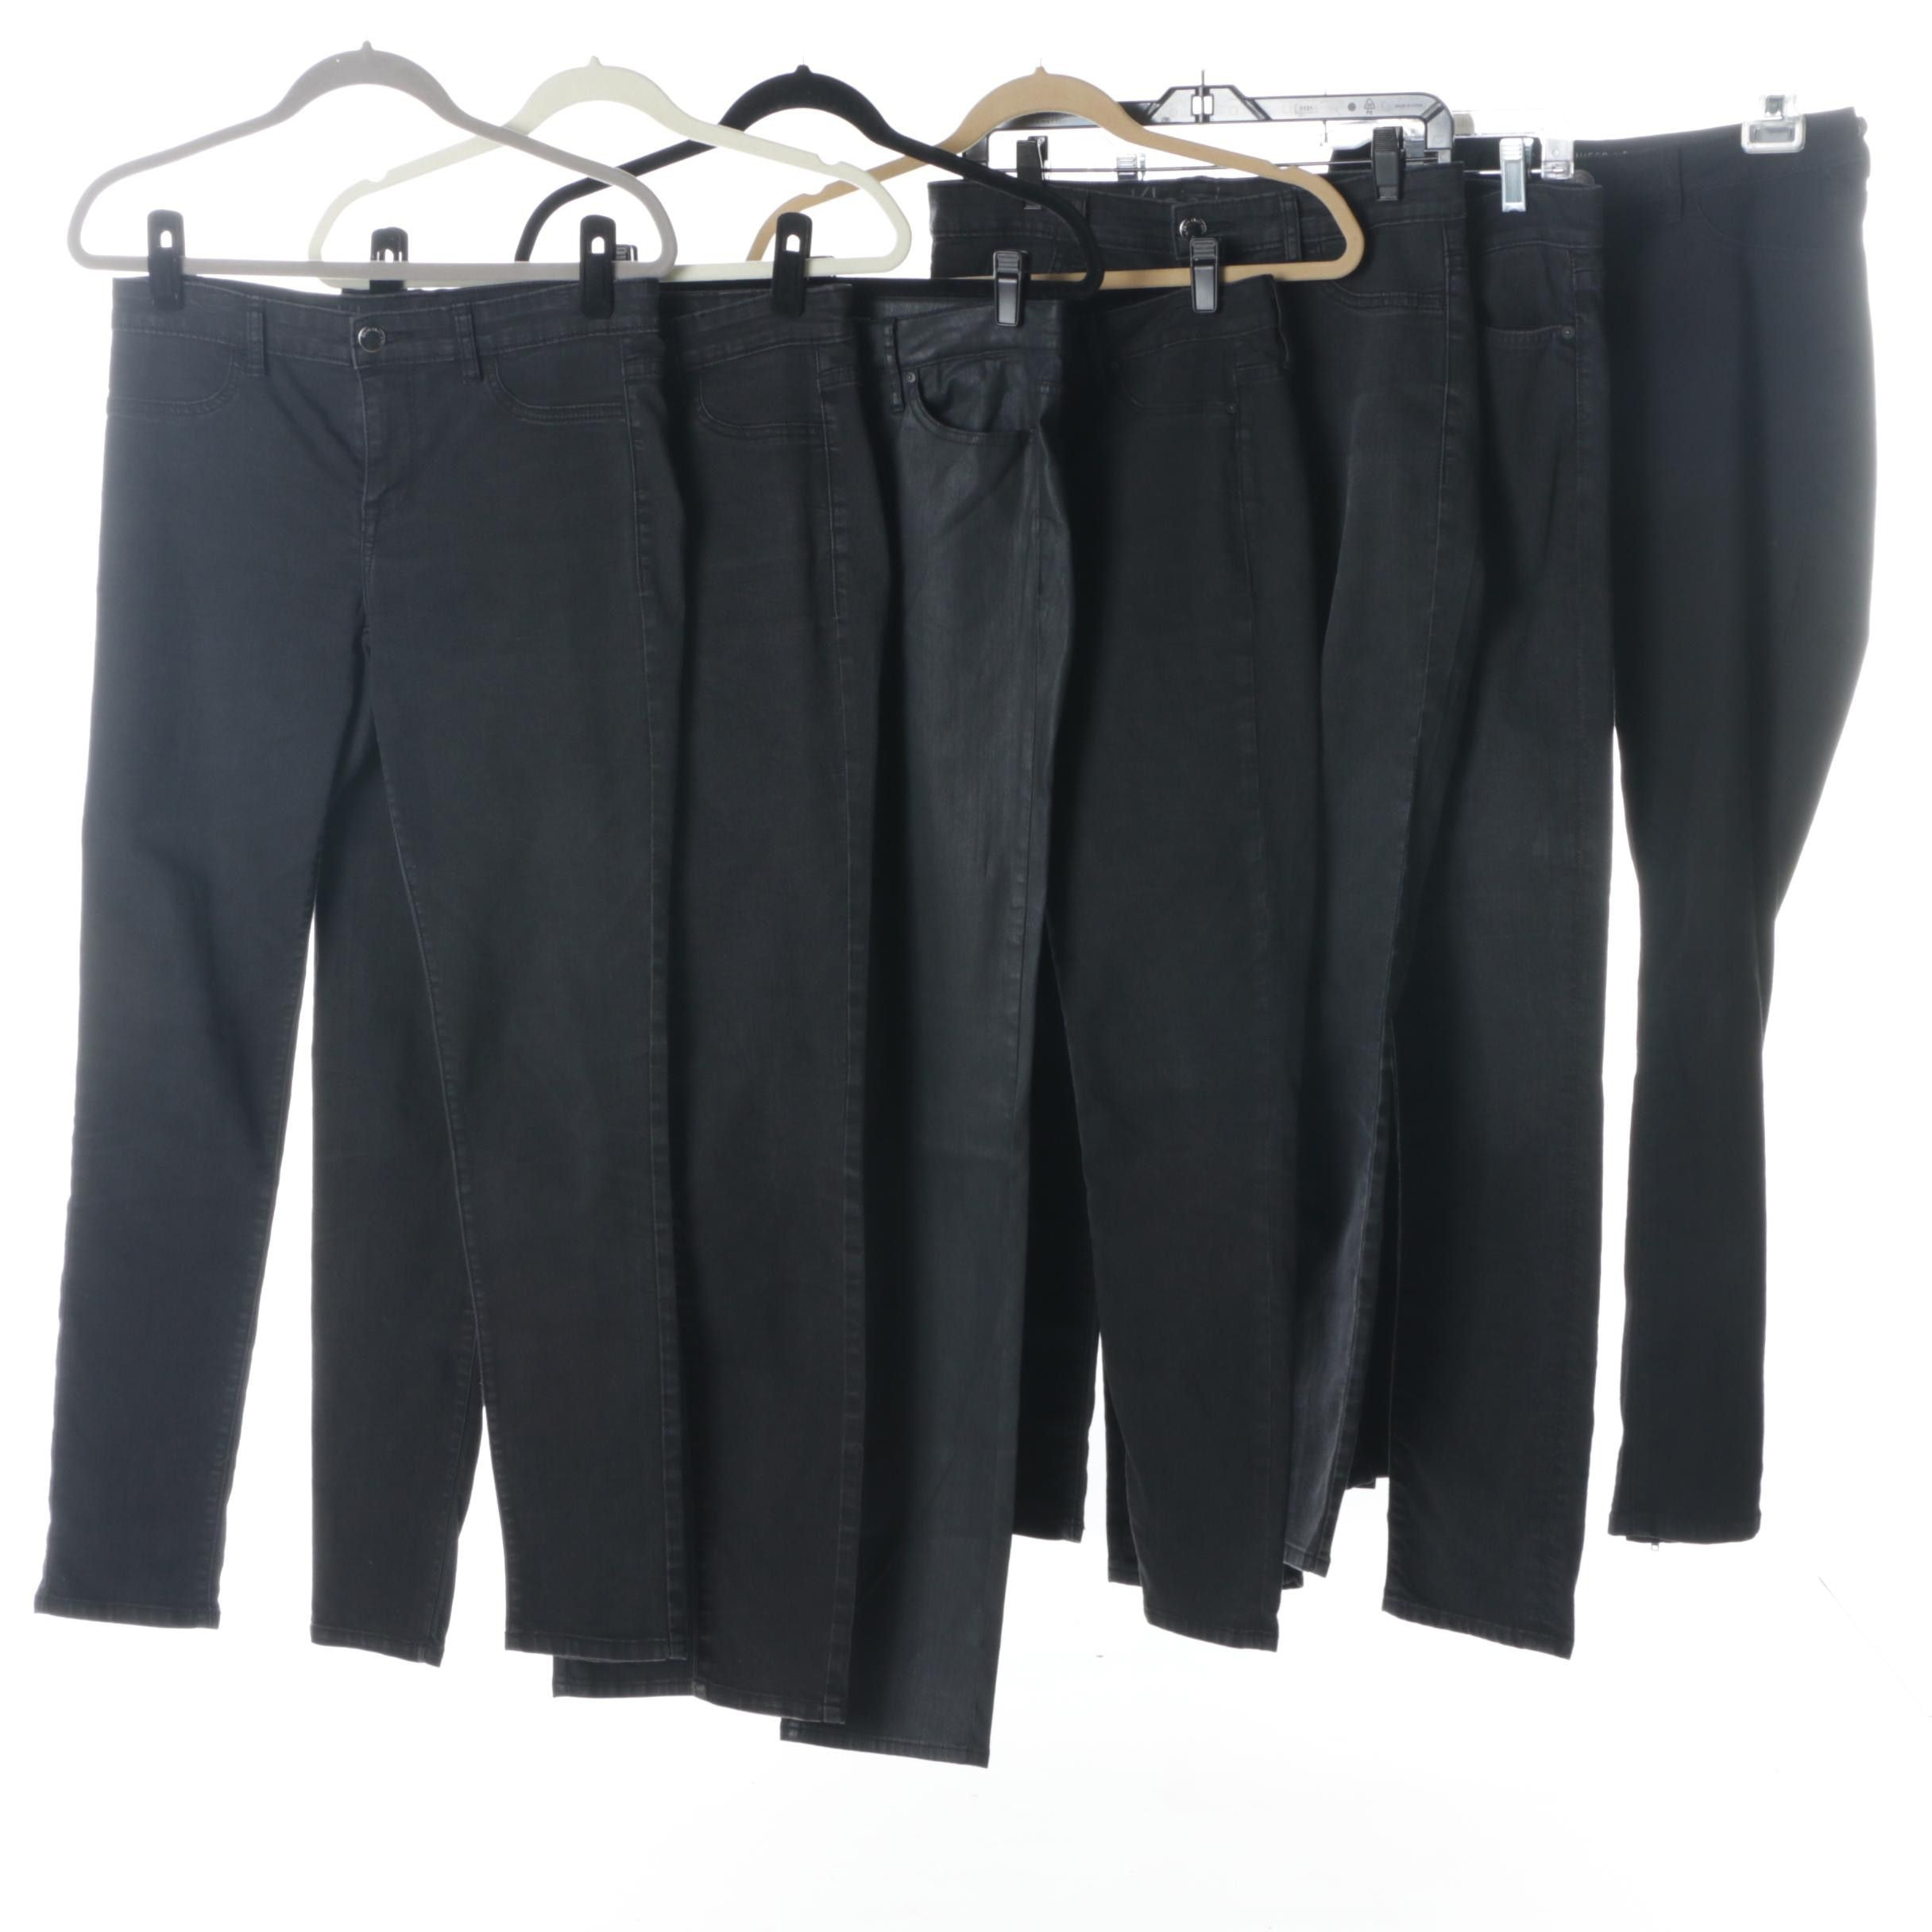 Women's Black Legging Jeans Including Calvin Klein and 7 For All Mankind